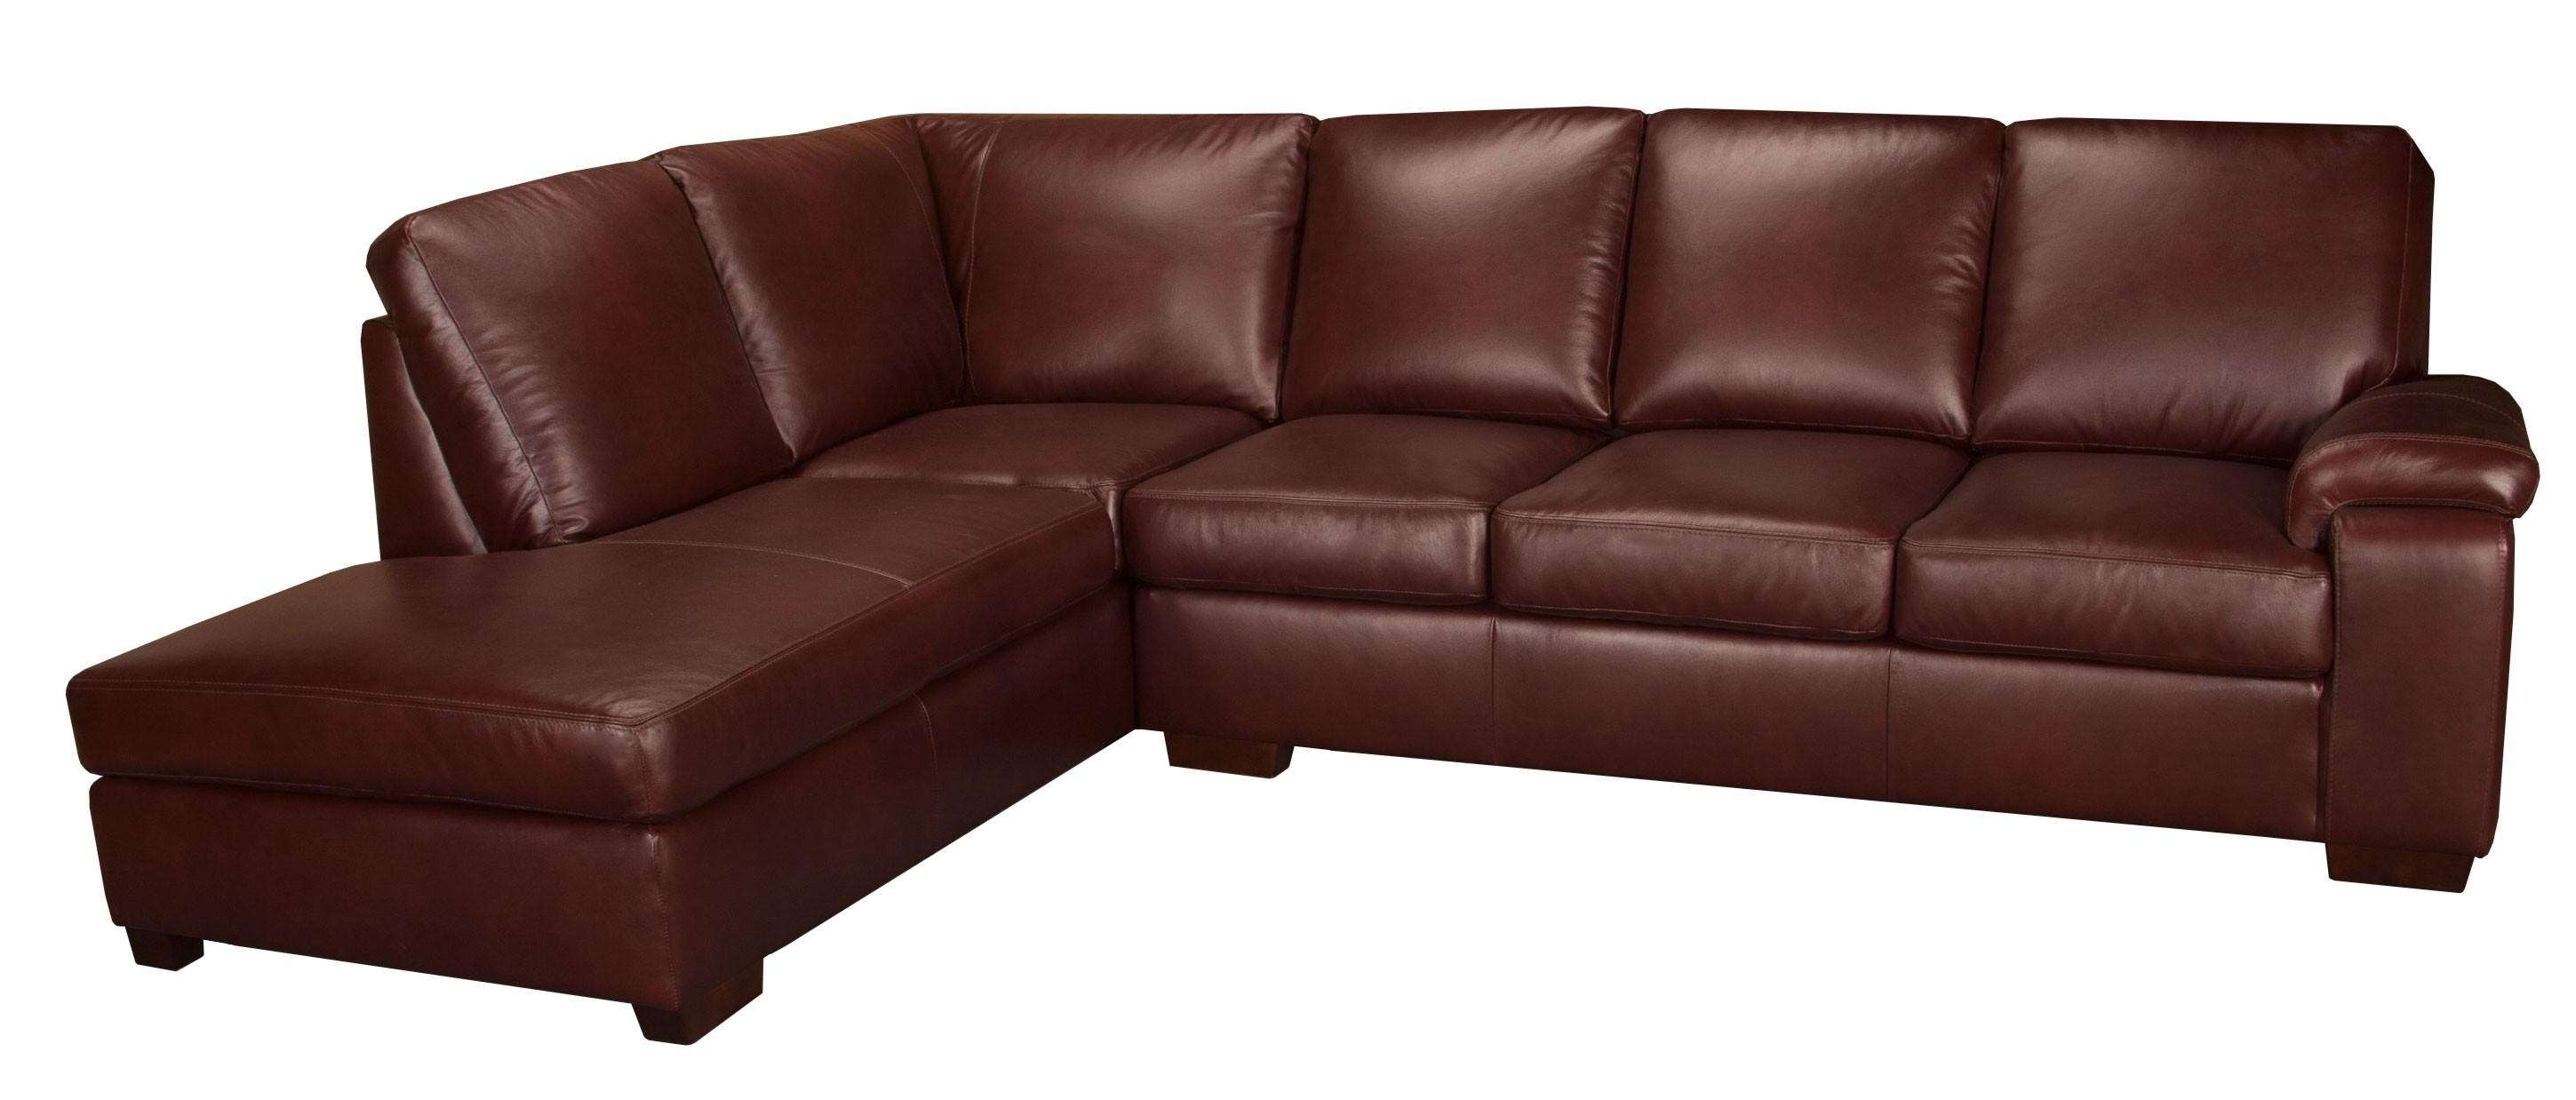 sofa covers toronto canada dario 20 43 choices of leather sectional sofas ideas